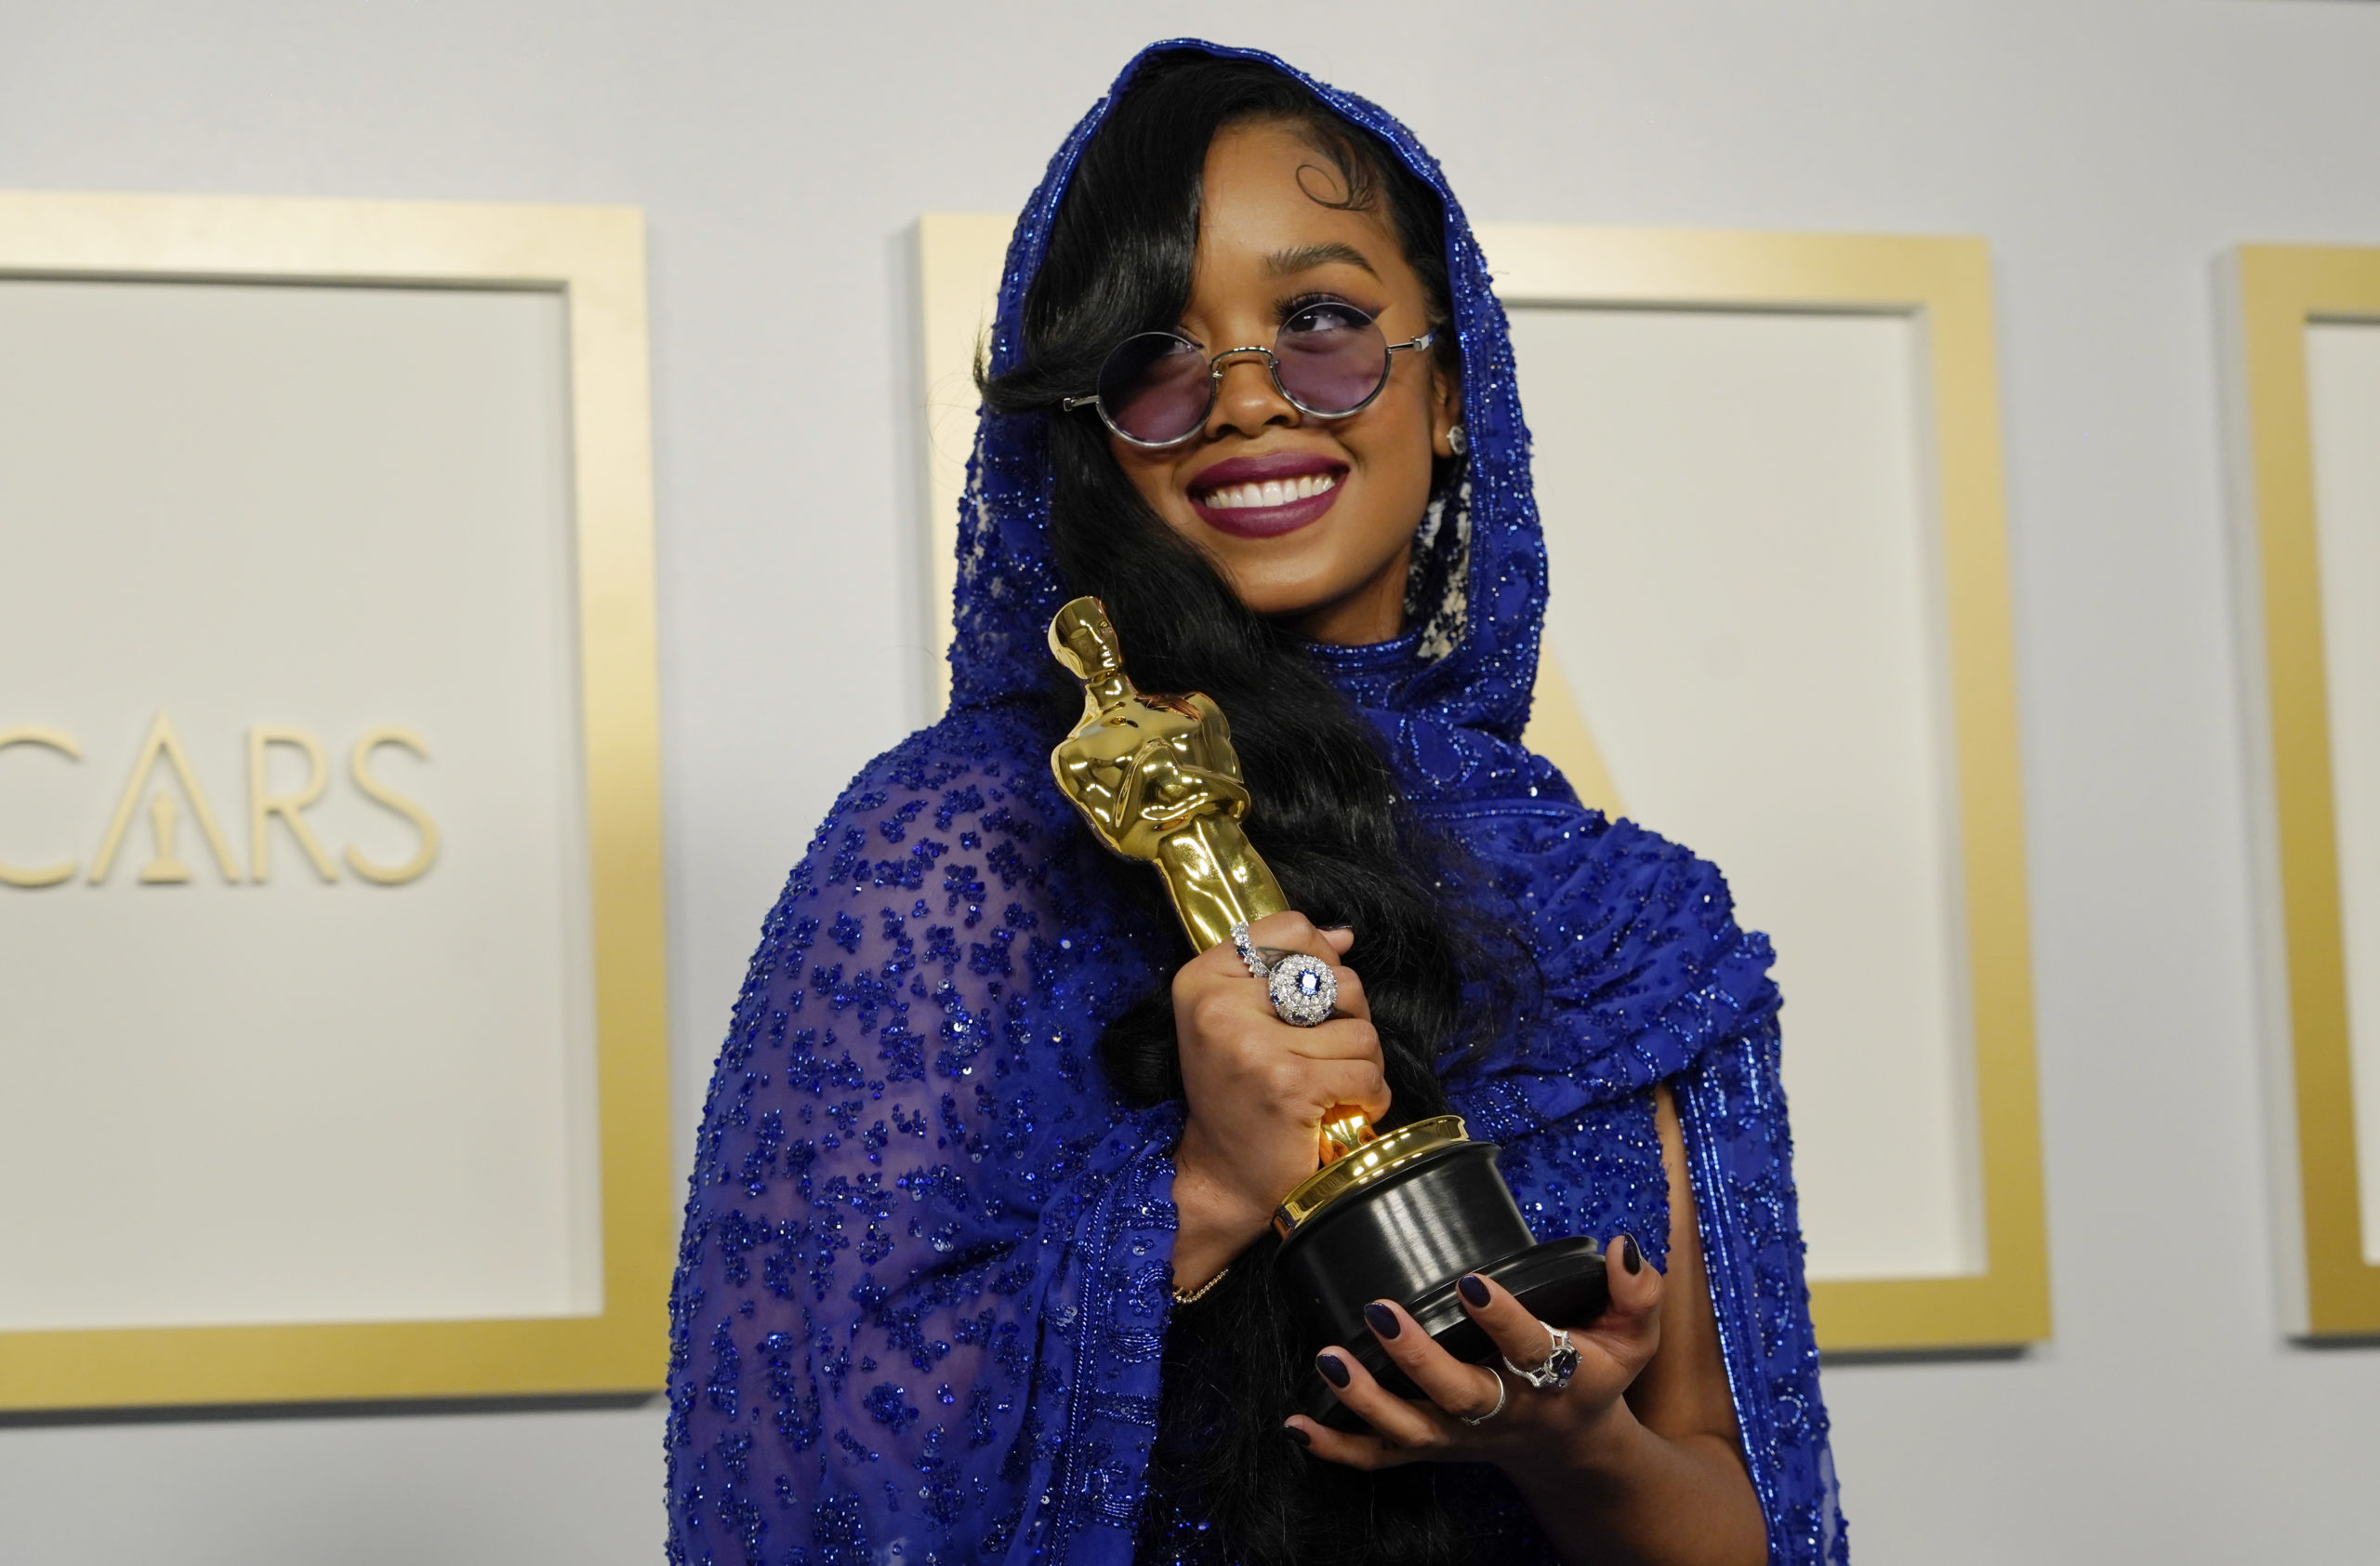 h-e-r-wins-oscar-for-best-original-song-for-fight-for-you-from-judas-the-black-messiah